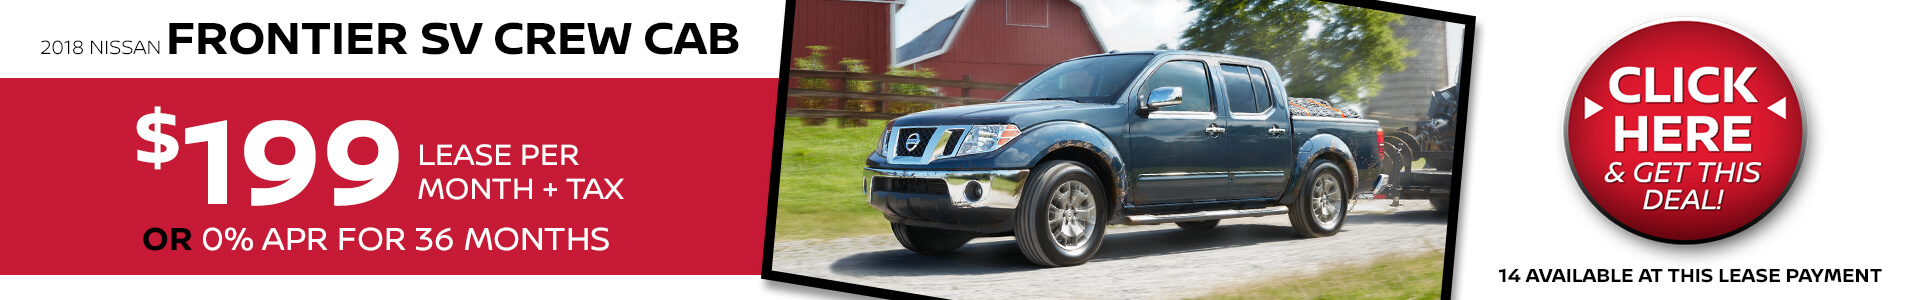 Nissan Frontier $199 Lease